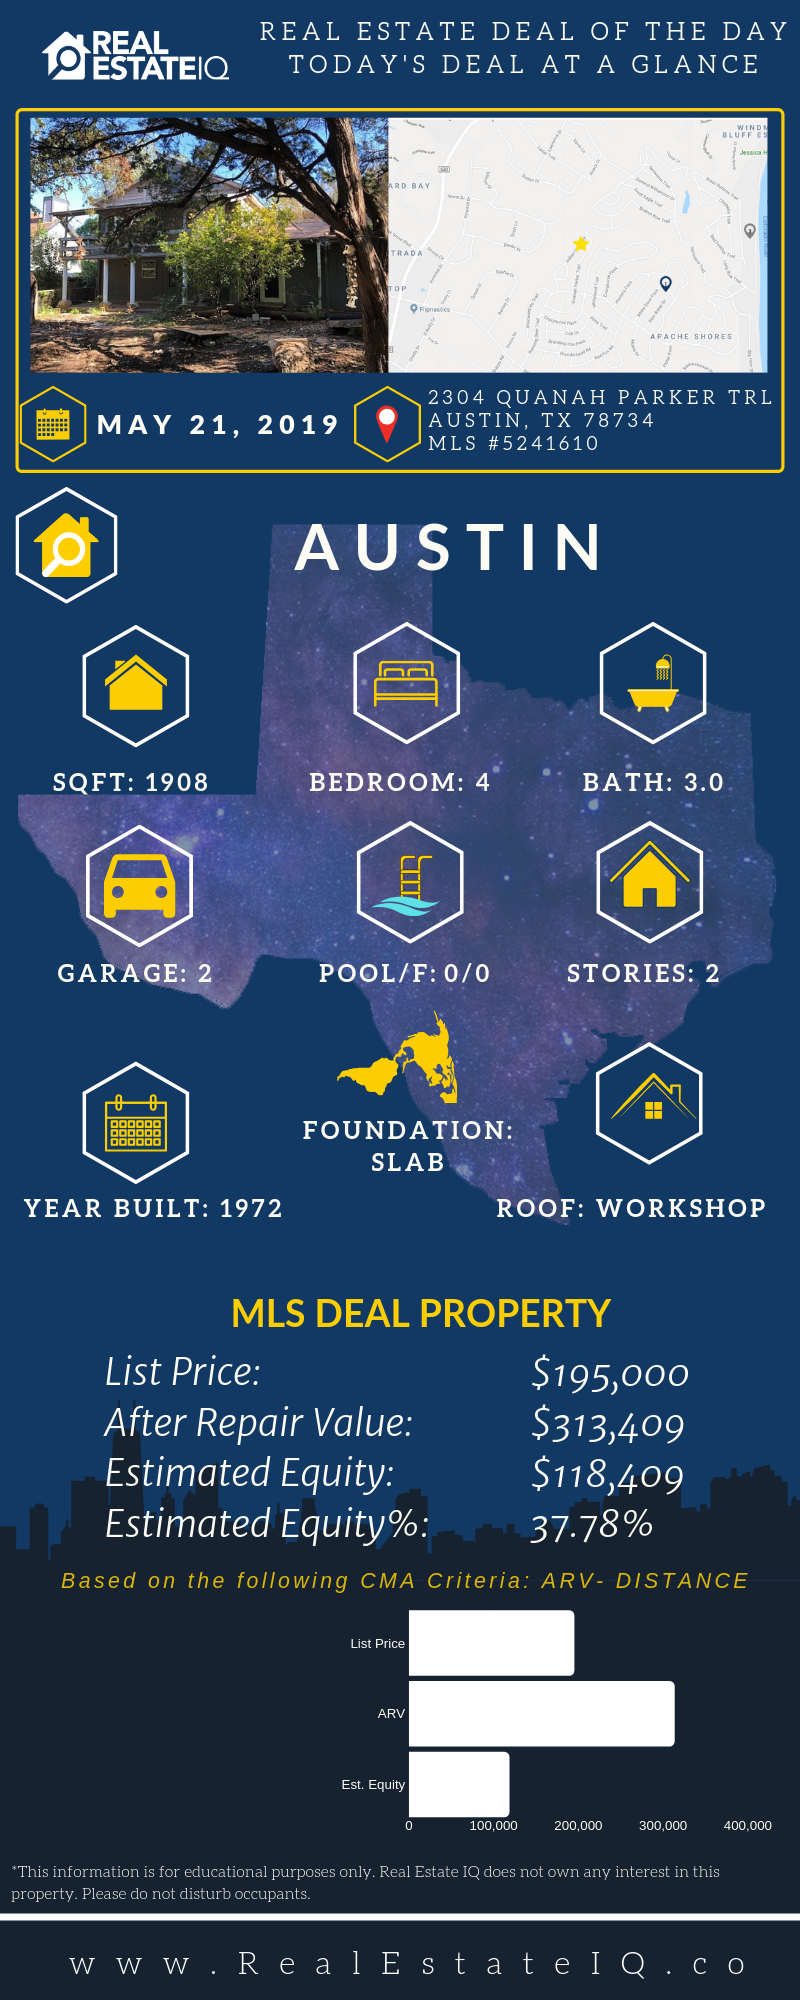 May 21 2019 Deal Of The Day With Over 118 000 Estimated Equity Video Http Bit Ly 2hwduxo Real Estate Day Recency